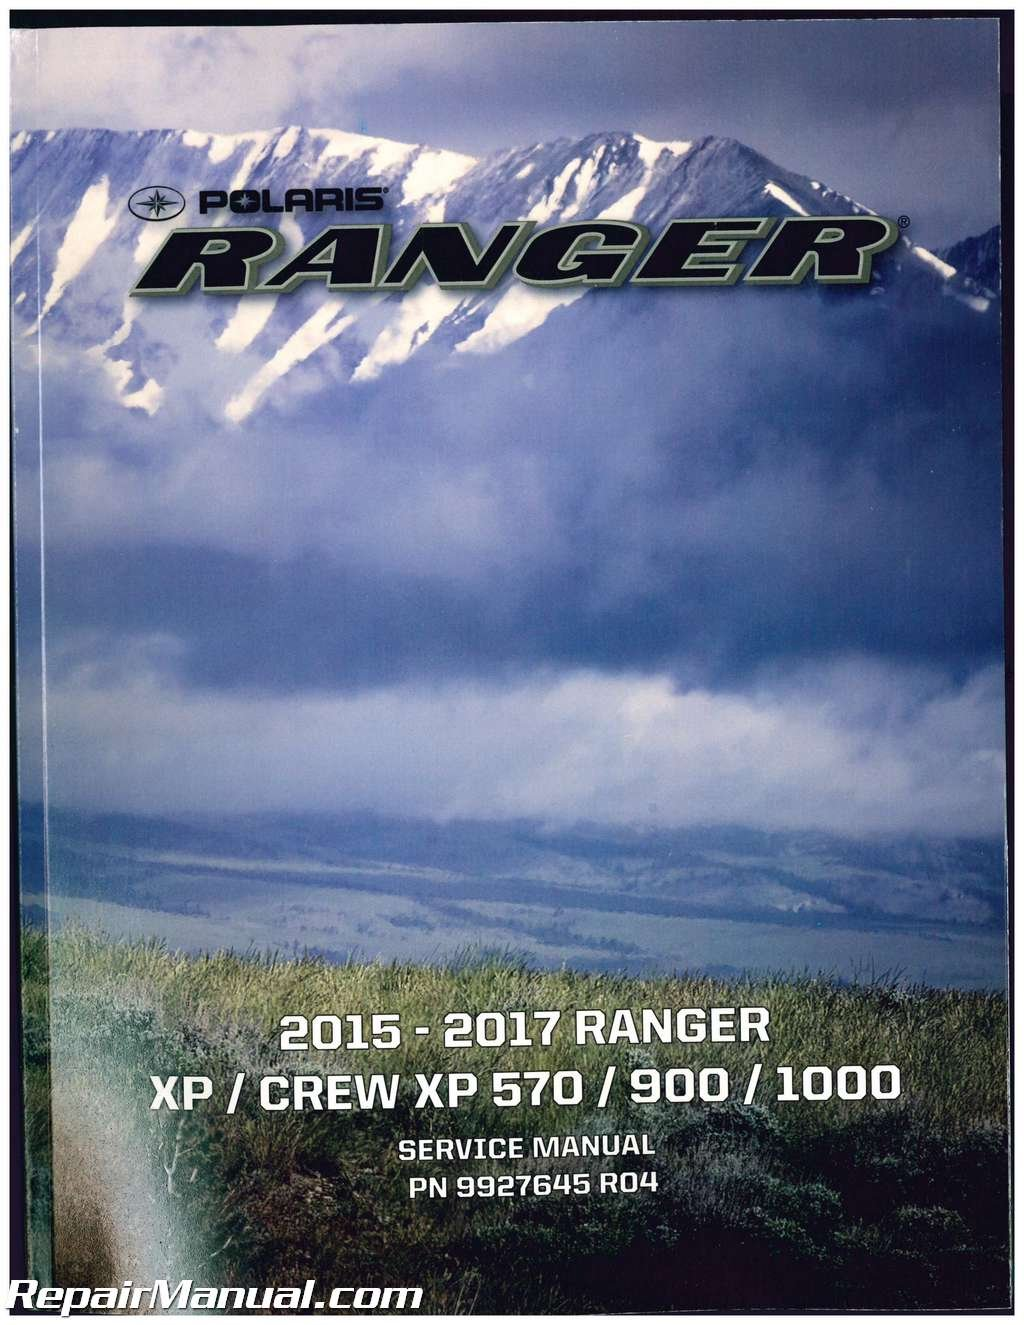 9927645 2015 2016 2017 Polaris Ranger XP CREW XP570 900 1000 Side by Side Service  Manual: Manufacturer: Amazon.com: Books